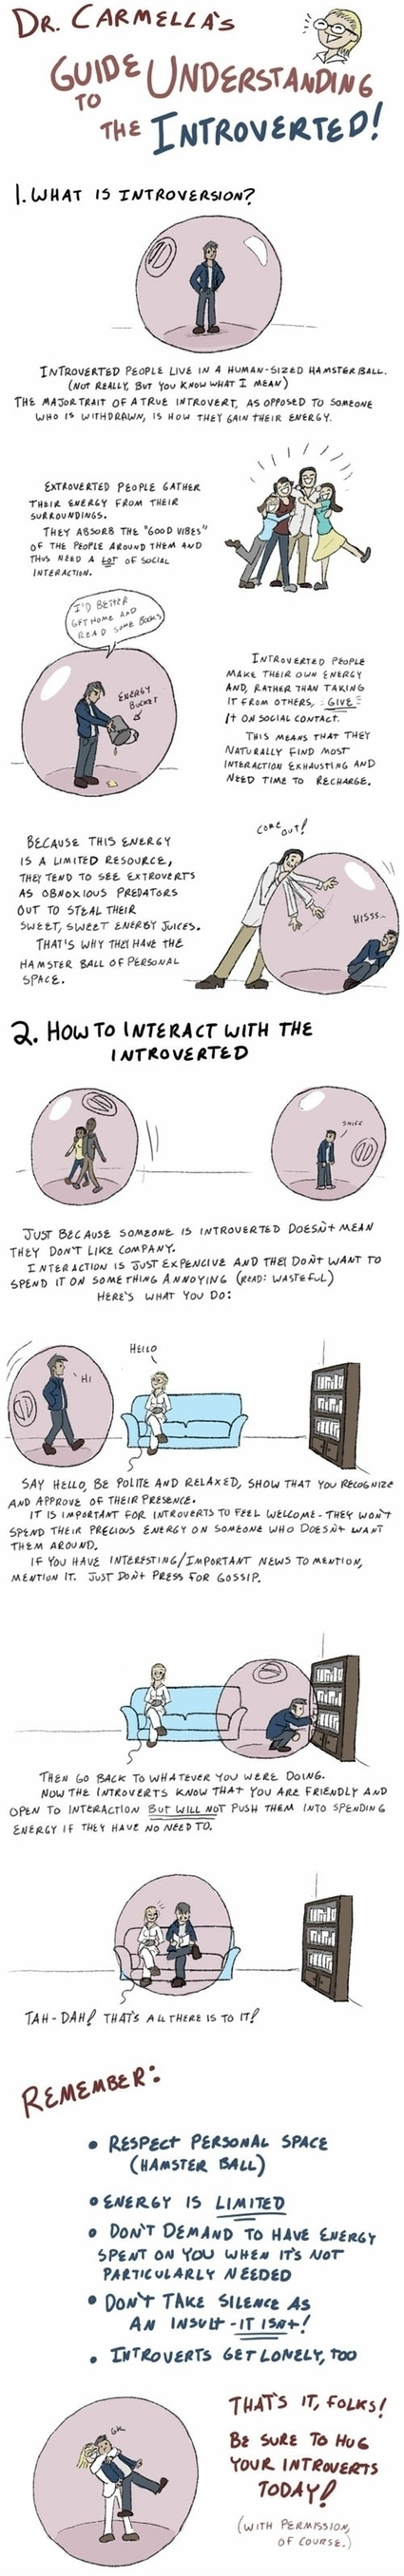 A Guide to Understanding Introverts. | Daily Magazine | Scoop.it